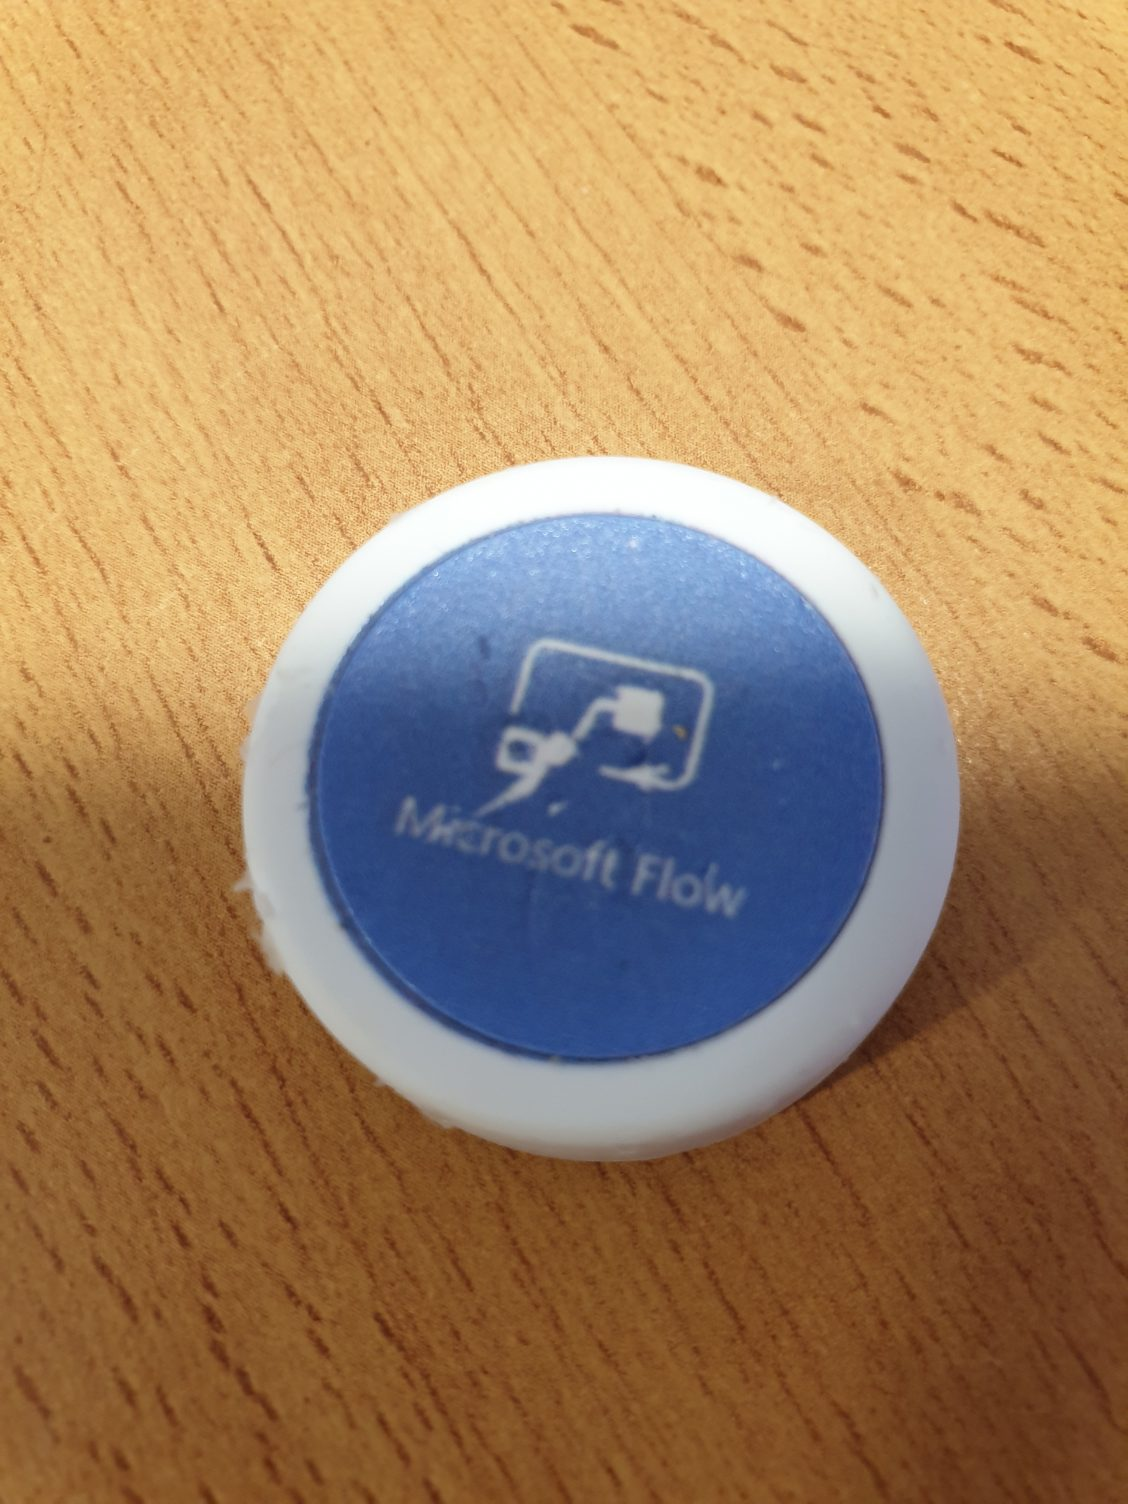 Flic Button with Flow logo